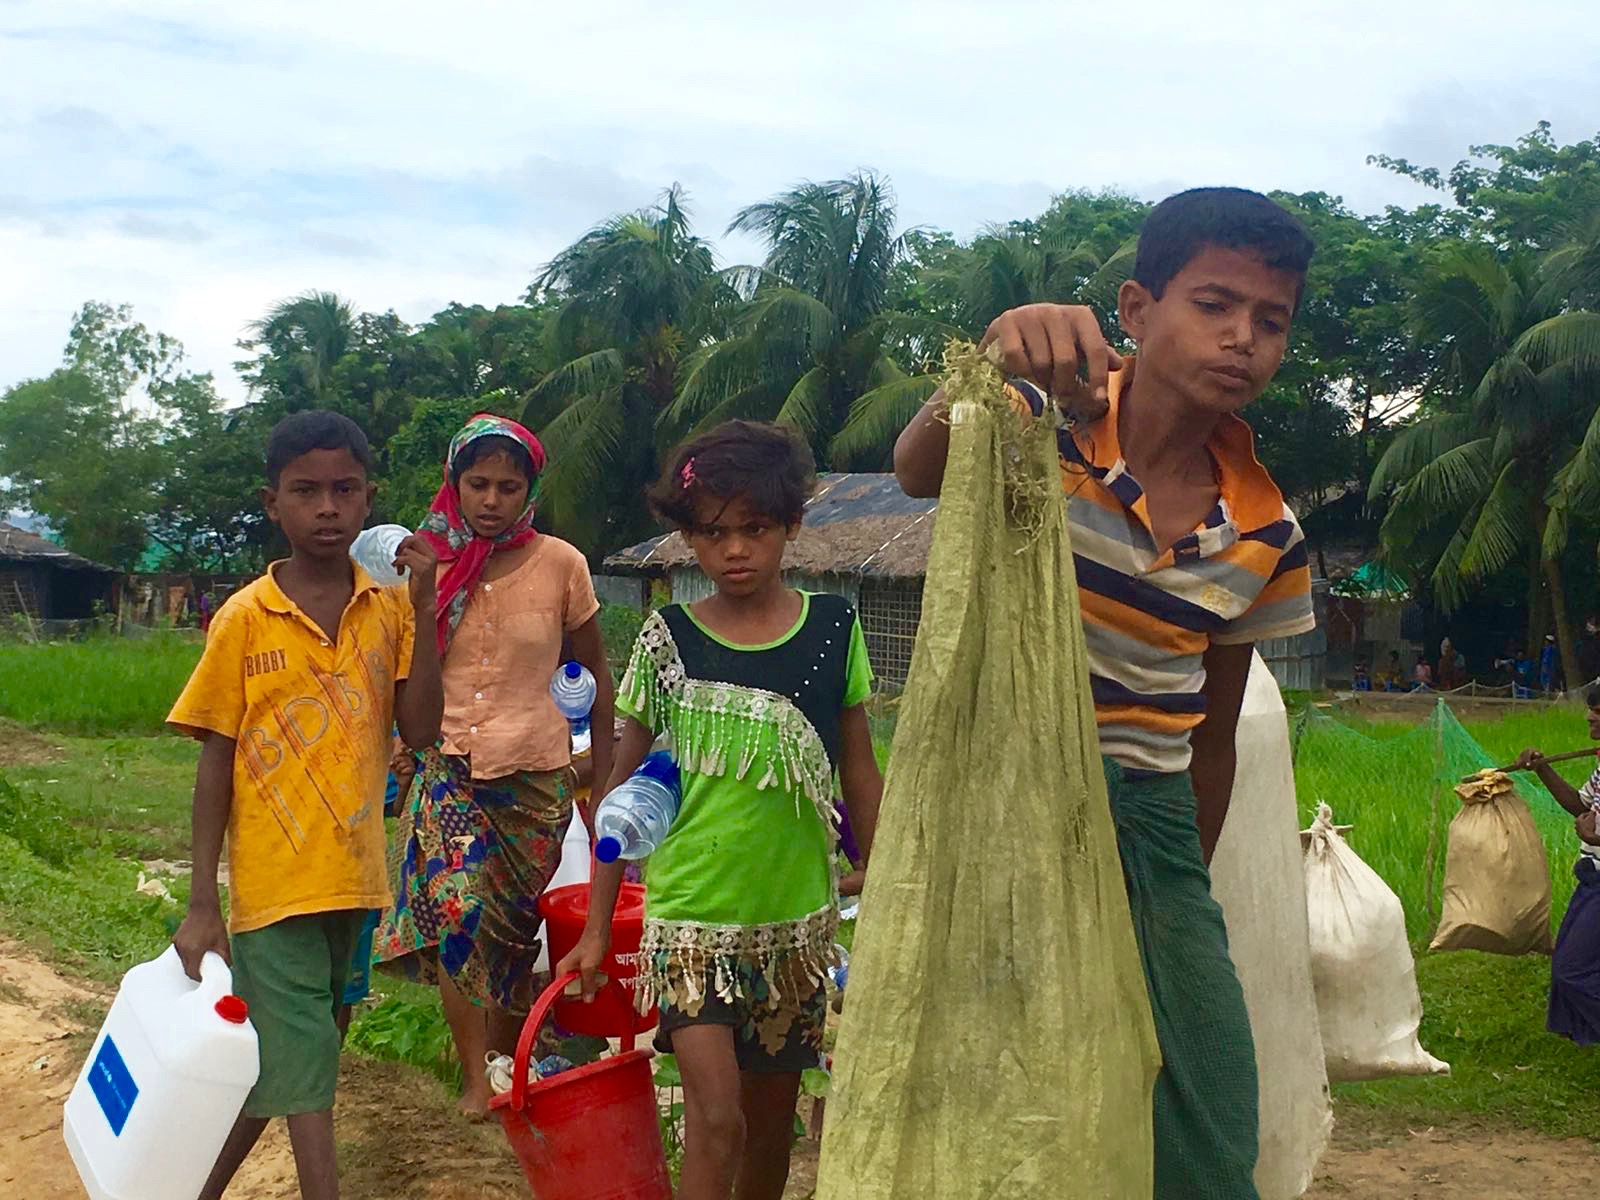 Rohingya refugees walk from the Myanmar border to Kutupalong refugee camp in Bangladesh